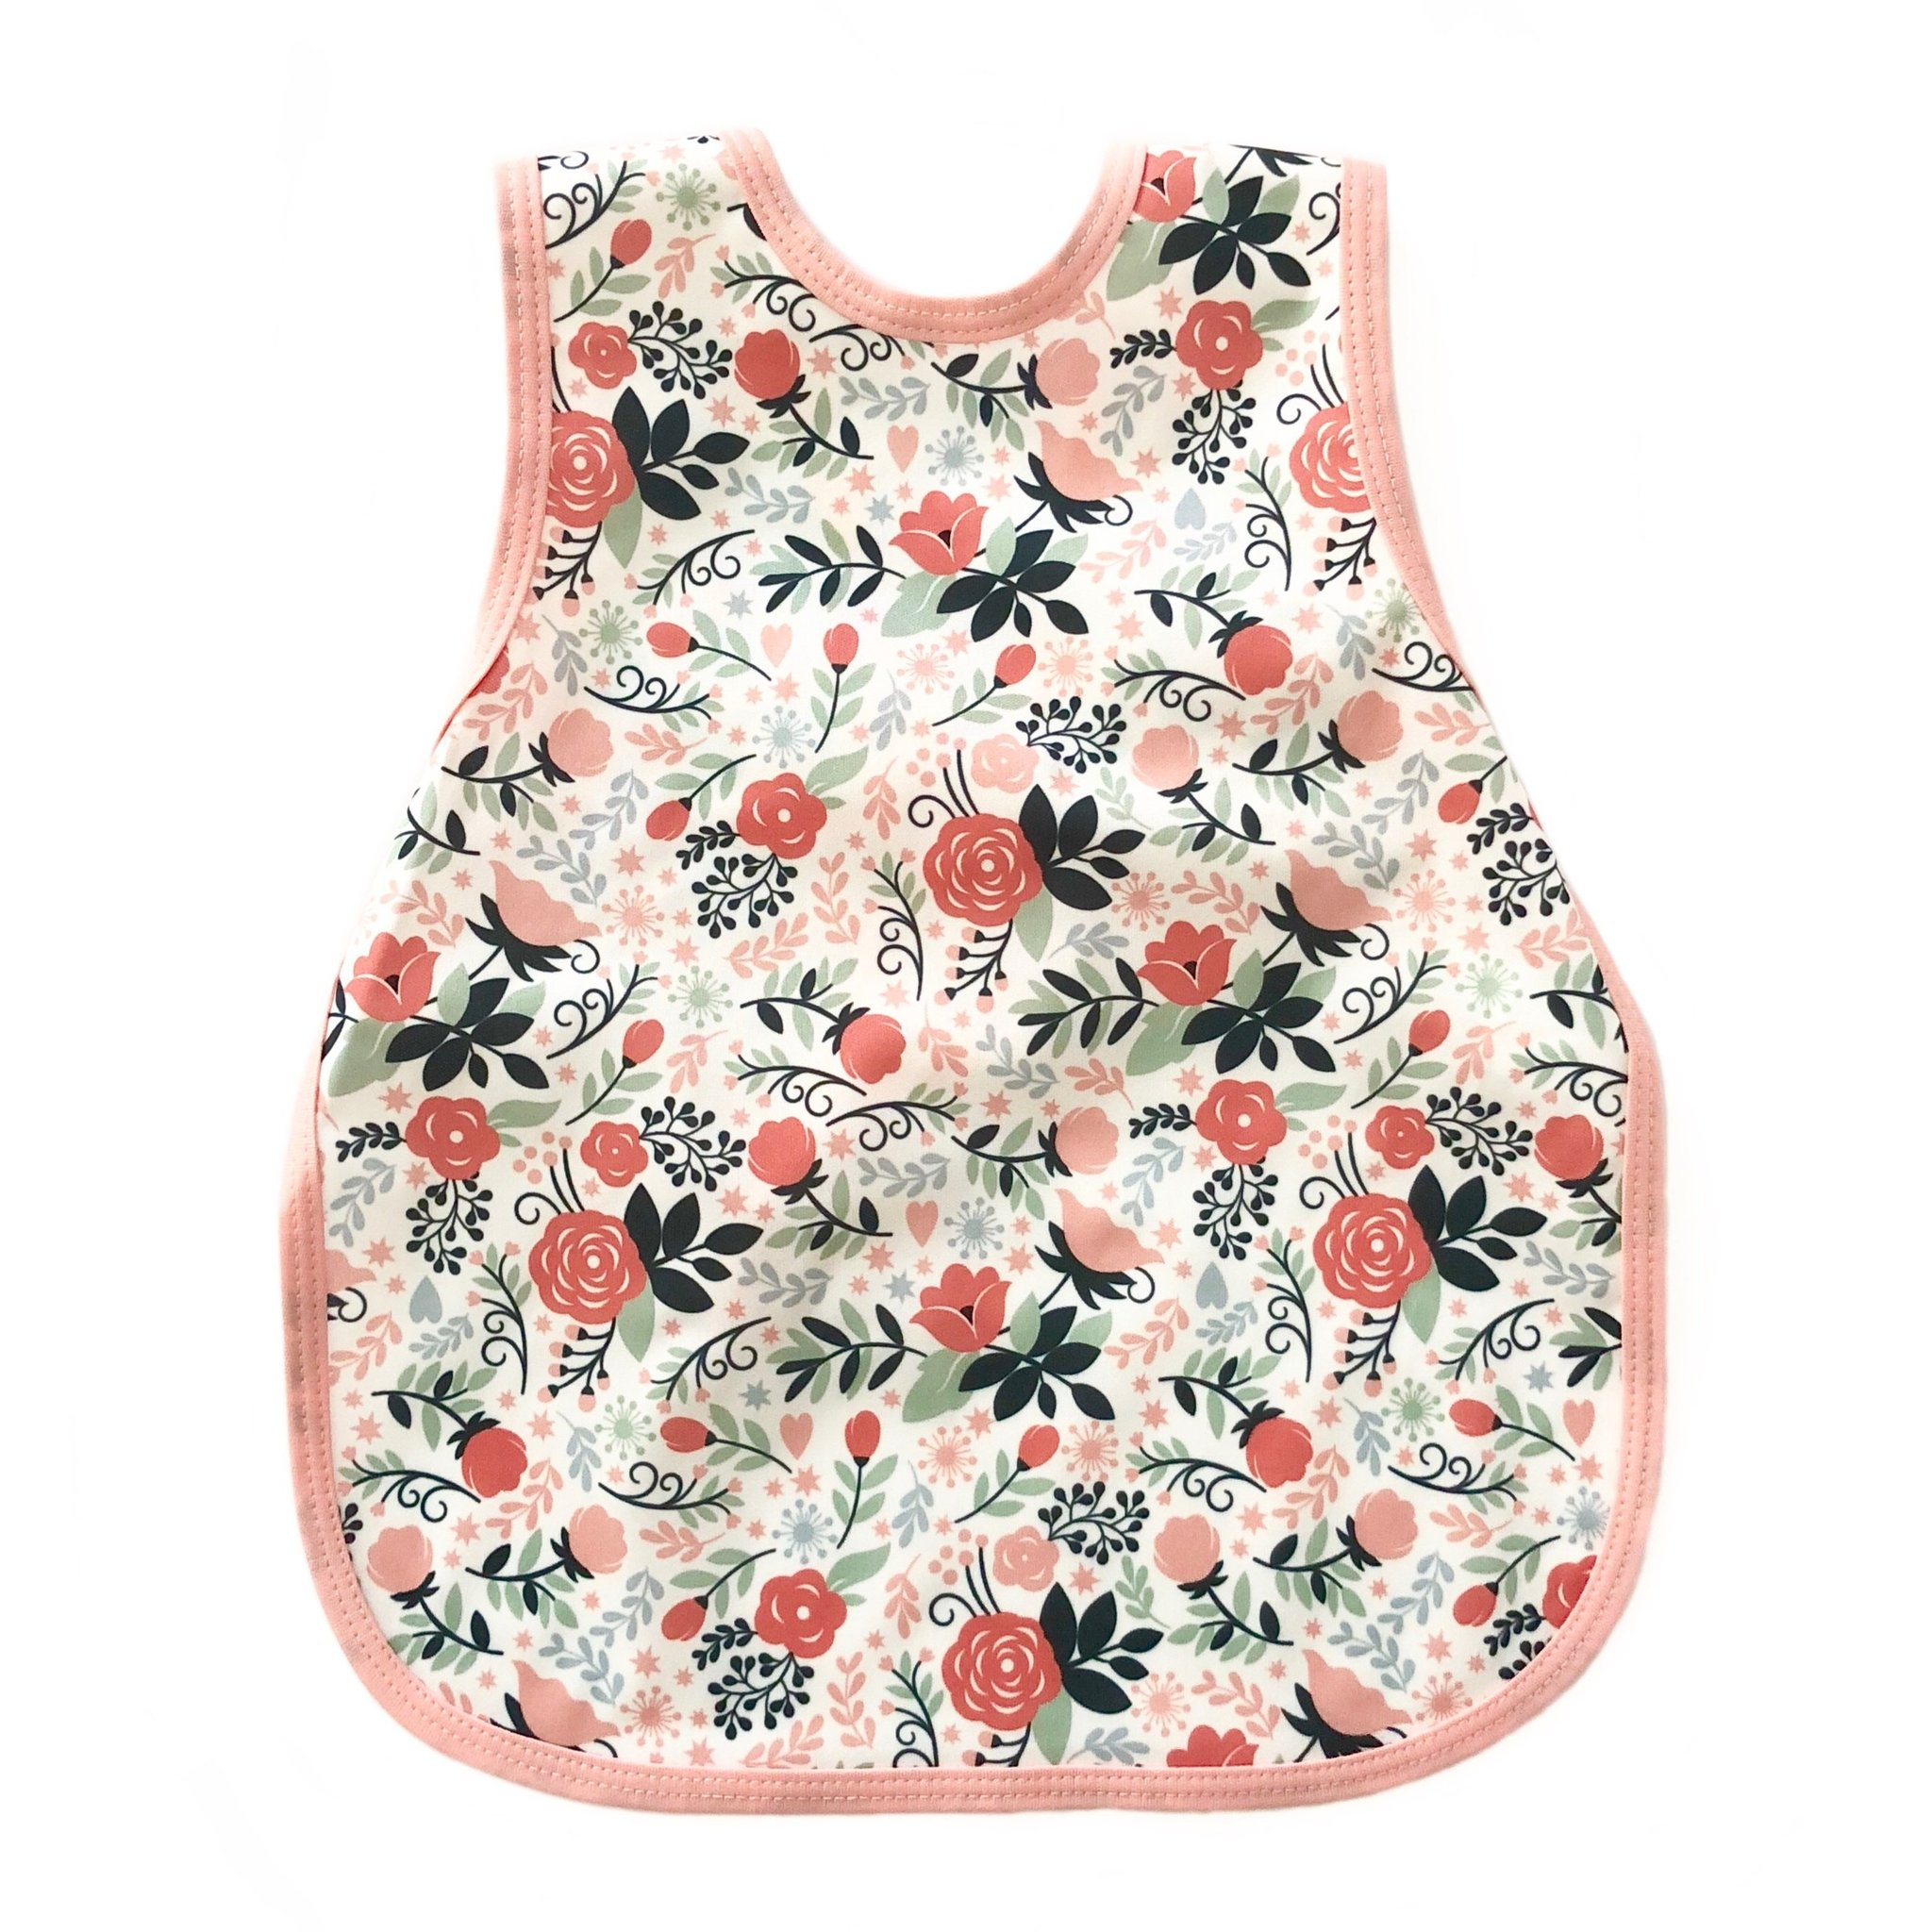 Toddler Bapron 6m-3T | Vintage Rose